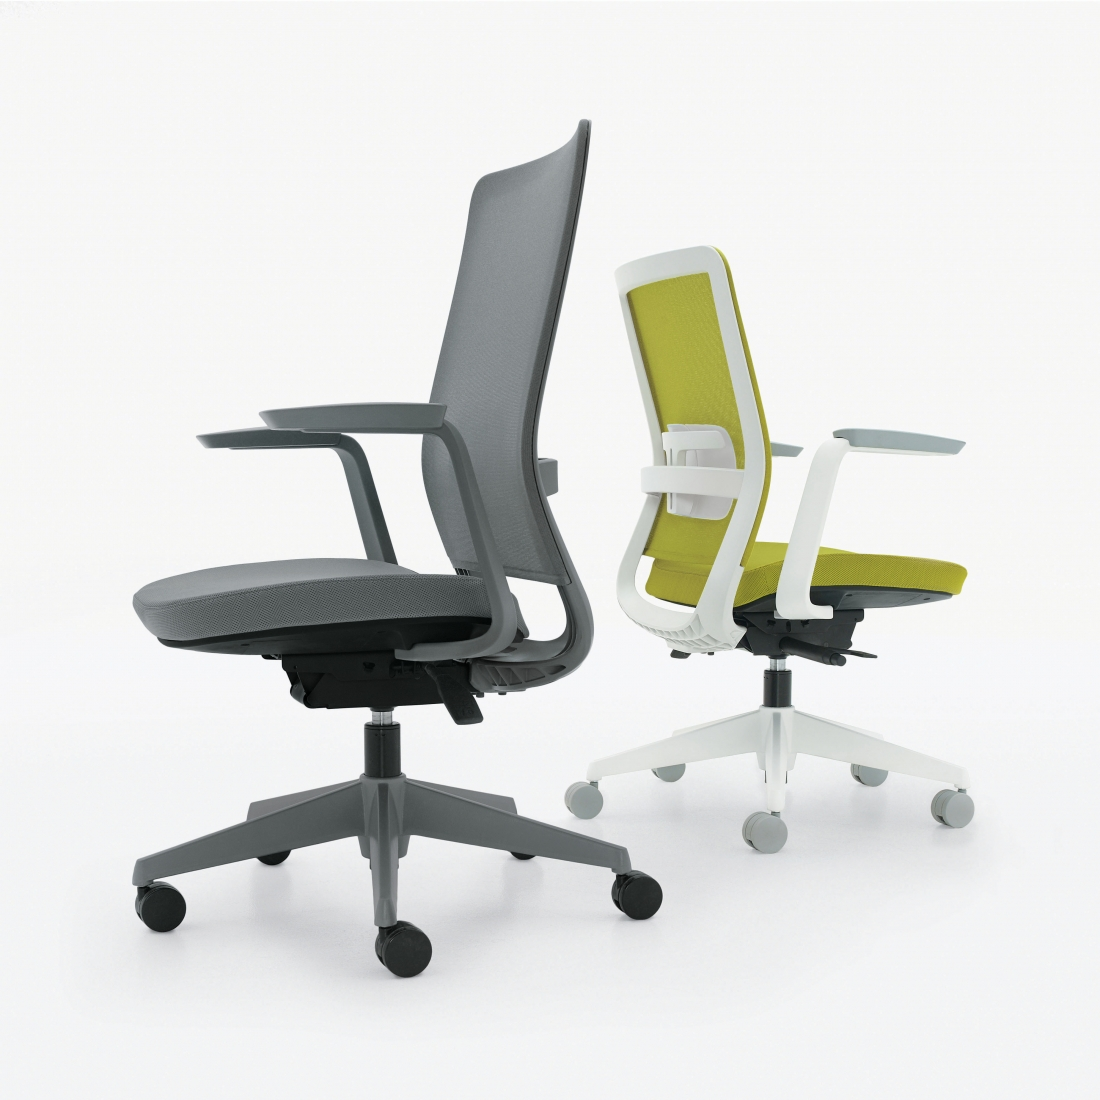 The Ergonomic Chairs From Global Are Never At A Shortage Of Unique Design  Elements. Global Chairs Promote Comfort While Making Interiors Pop.